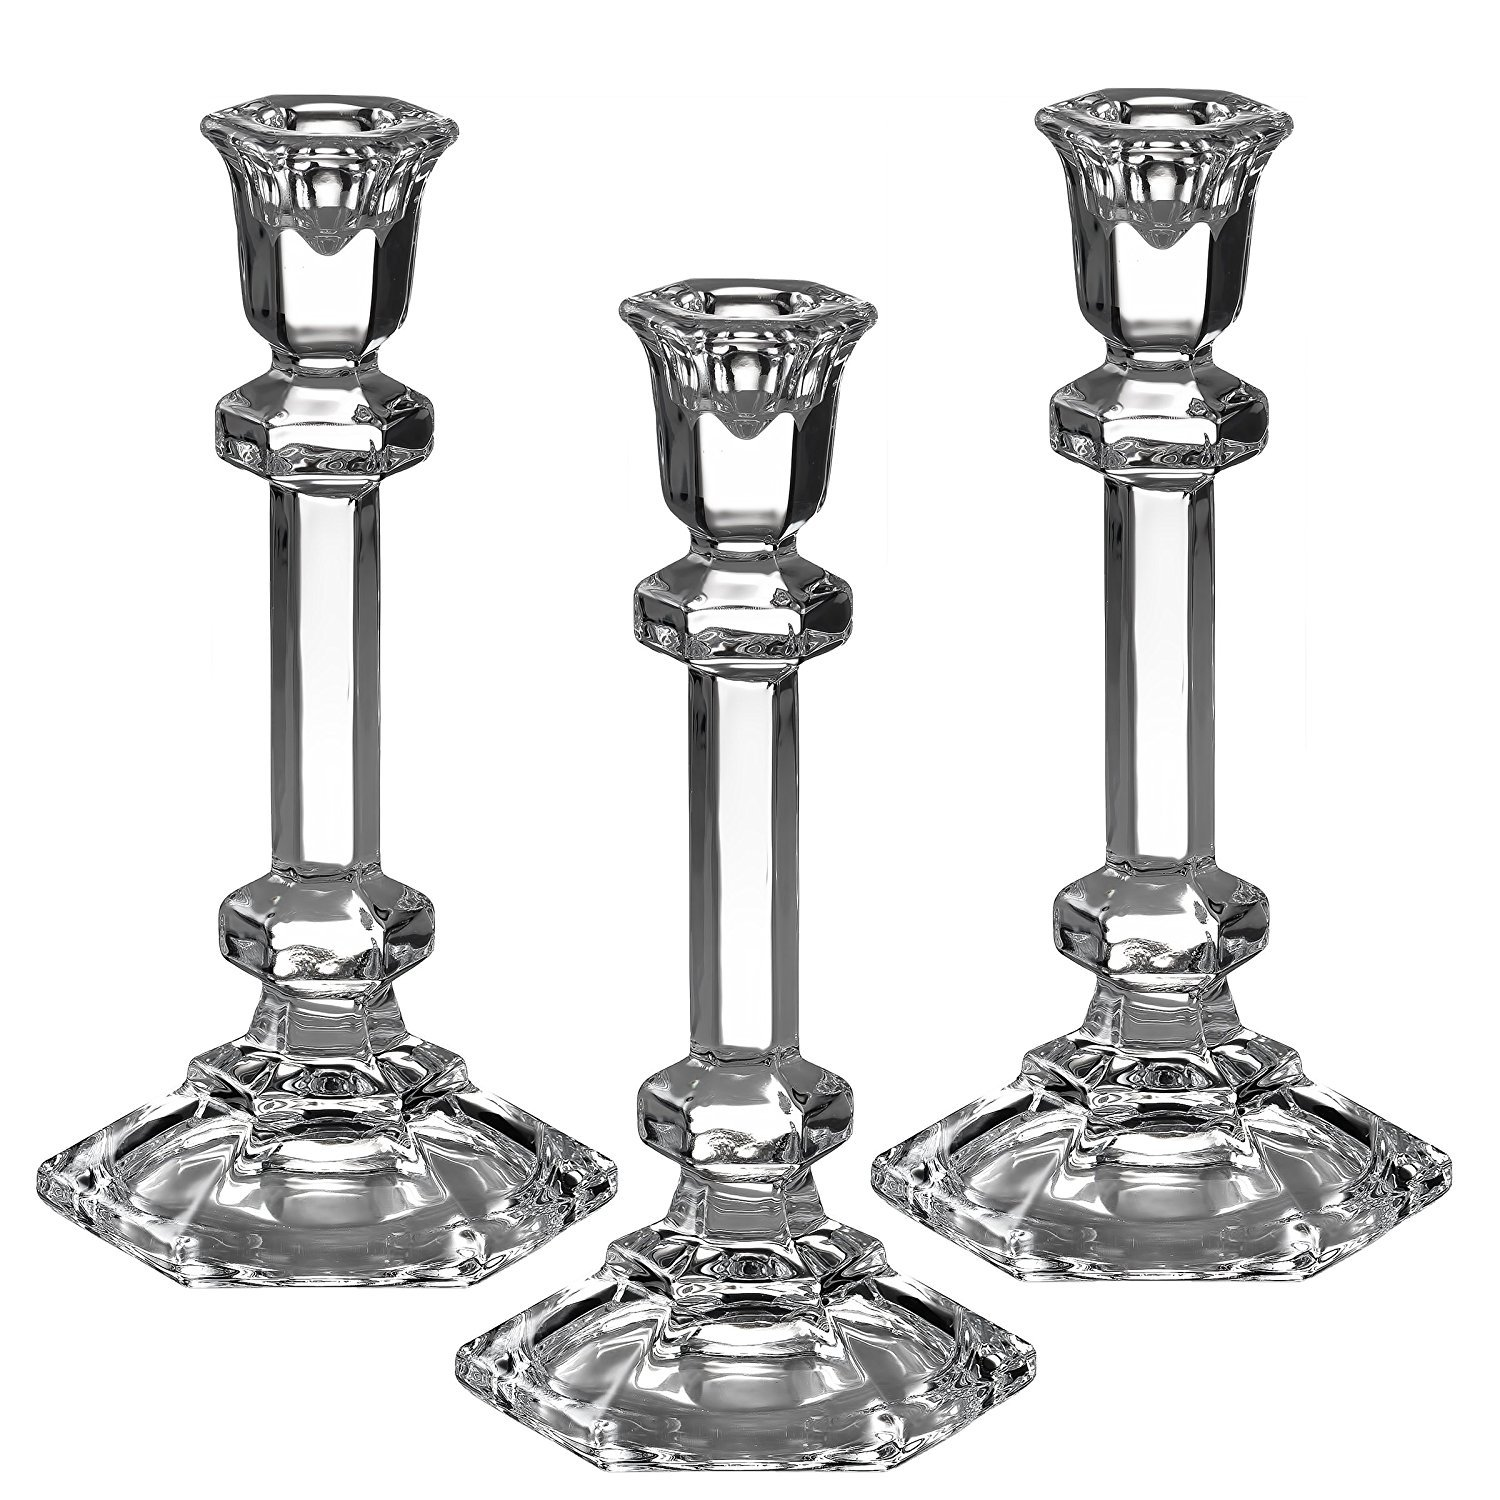 Light In The Dark 3Hexagonal shaped taper/stick Candle Holder 7.5 Inch Tall Clear LITD-TH-HAX-7.5-3